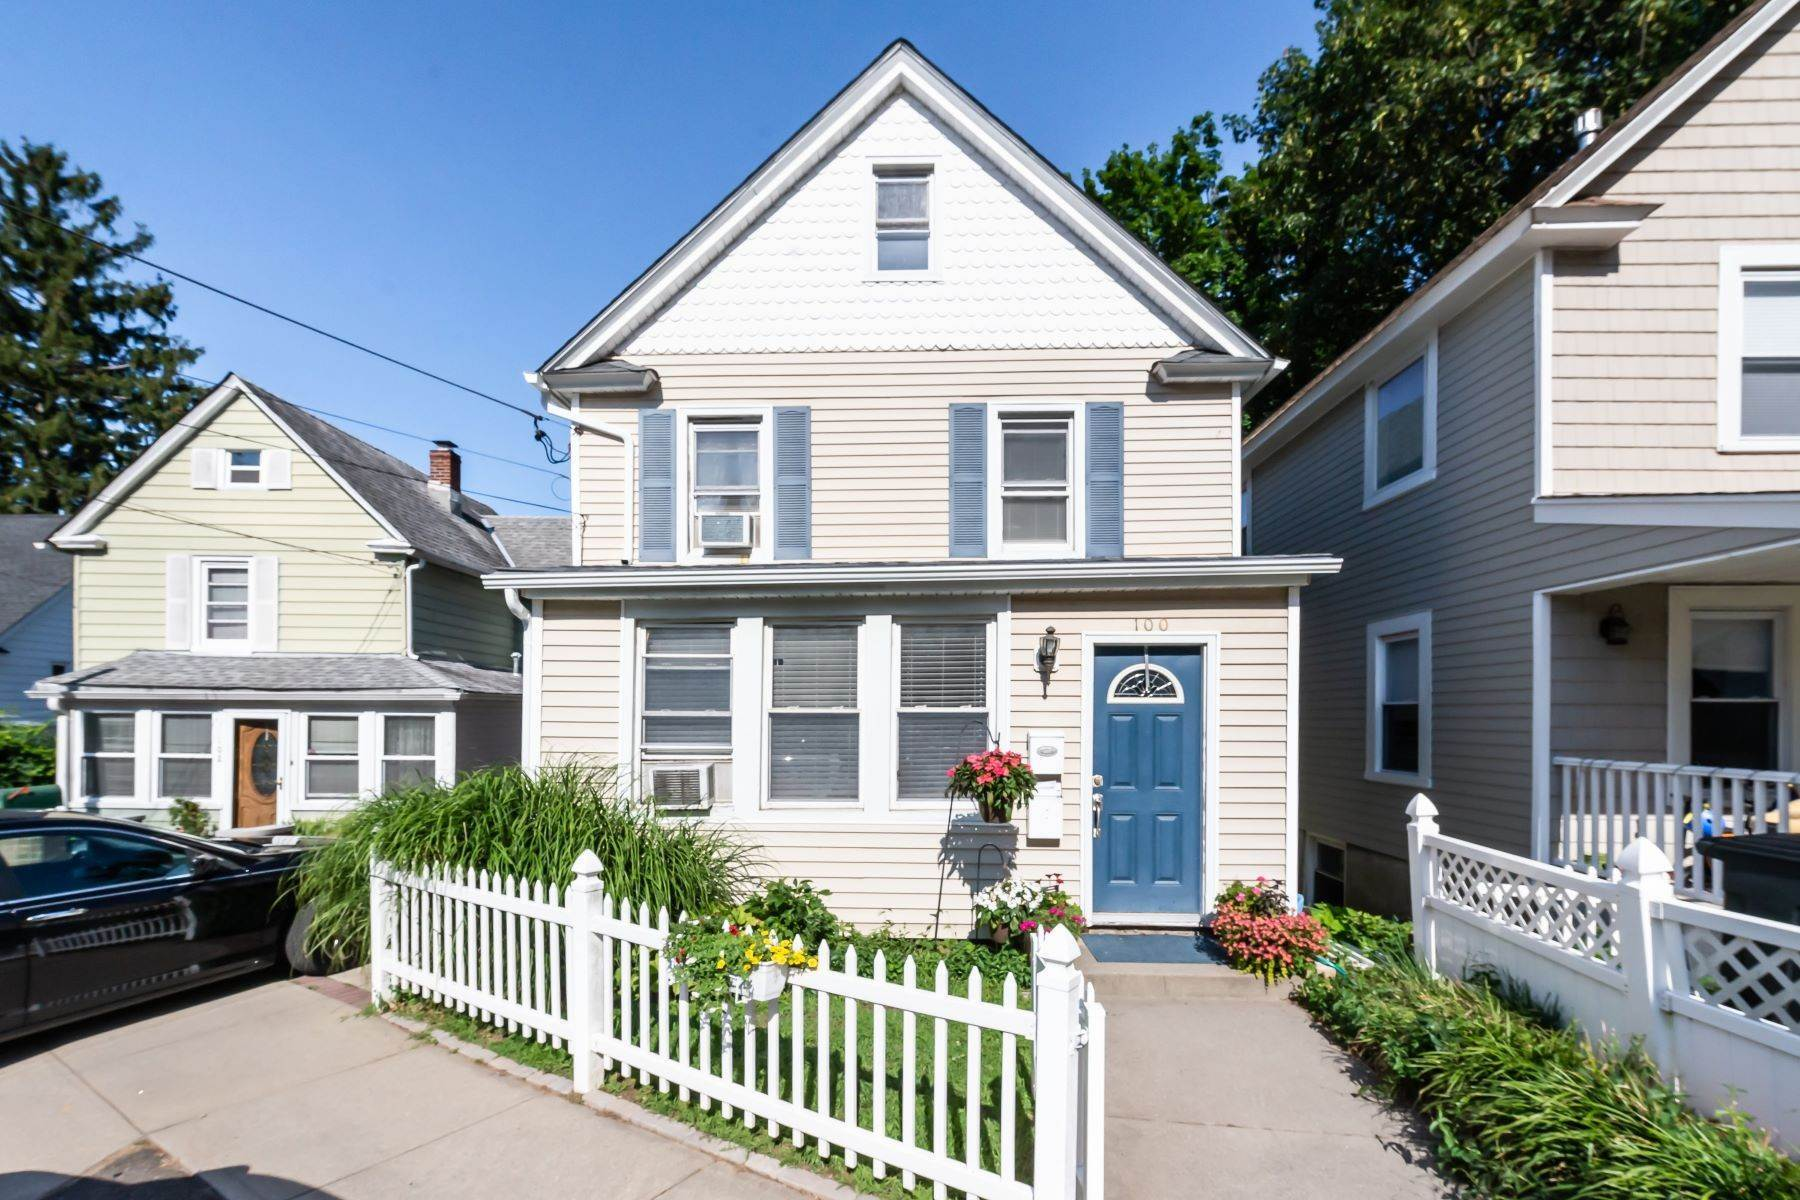 Multi-Family Homes for Sale at 100 School, Oyster Bay, Ny, 11771 100 School St Oyster Bay, New York 11771 United States